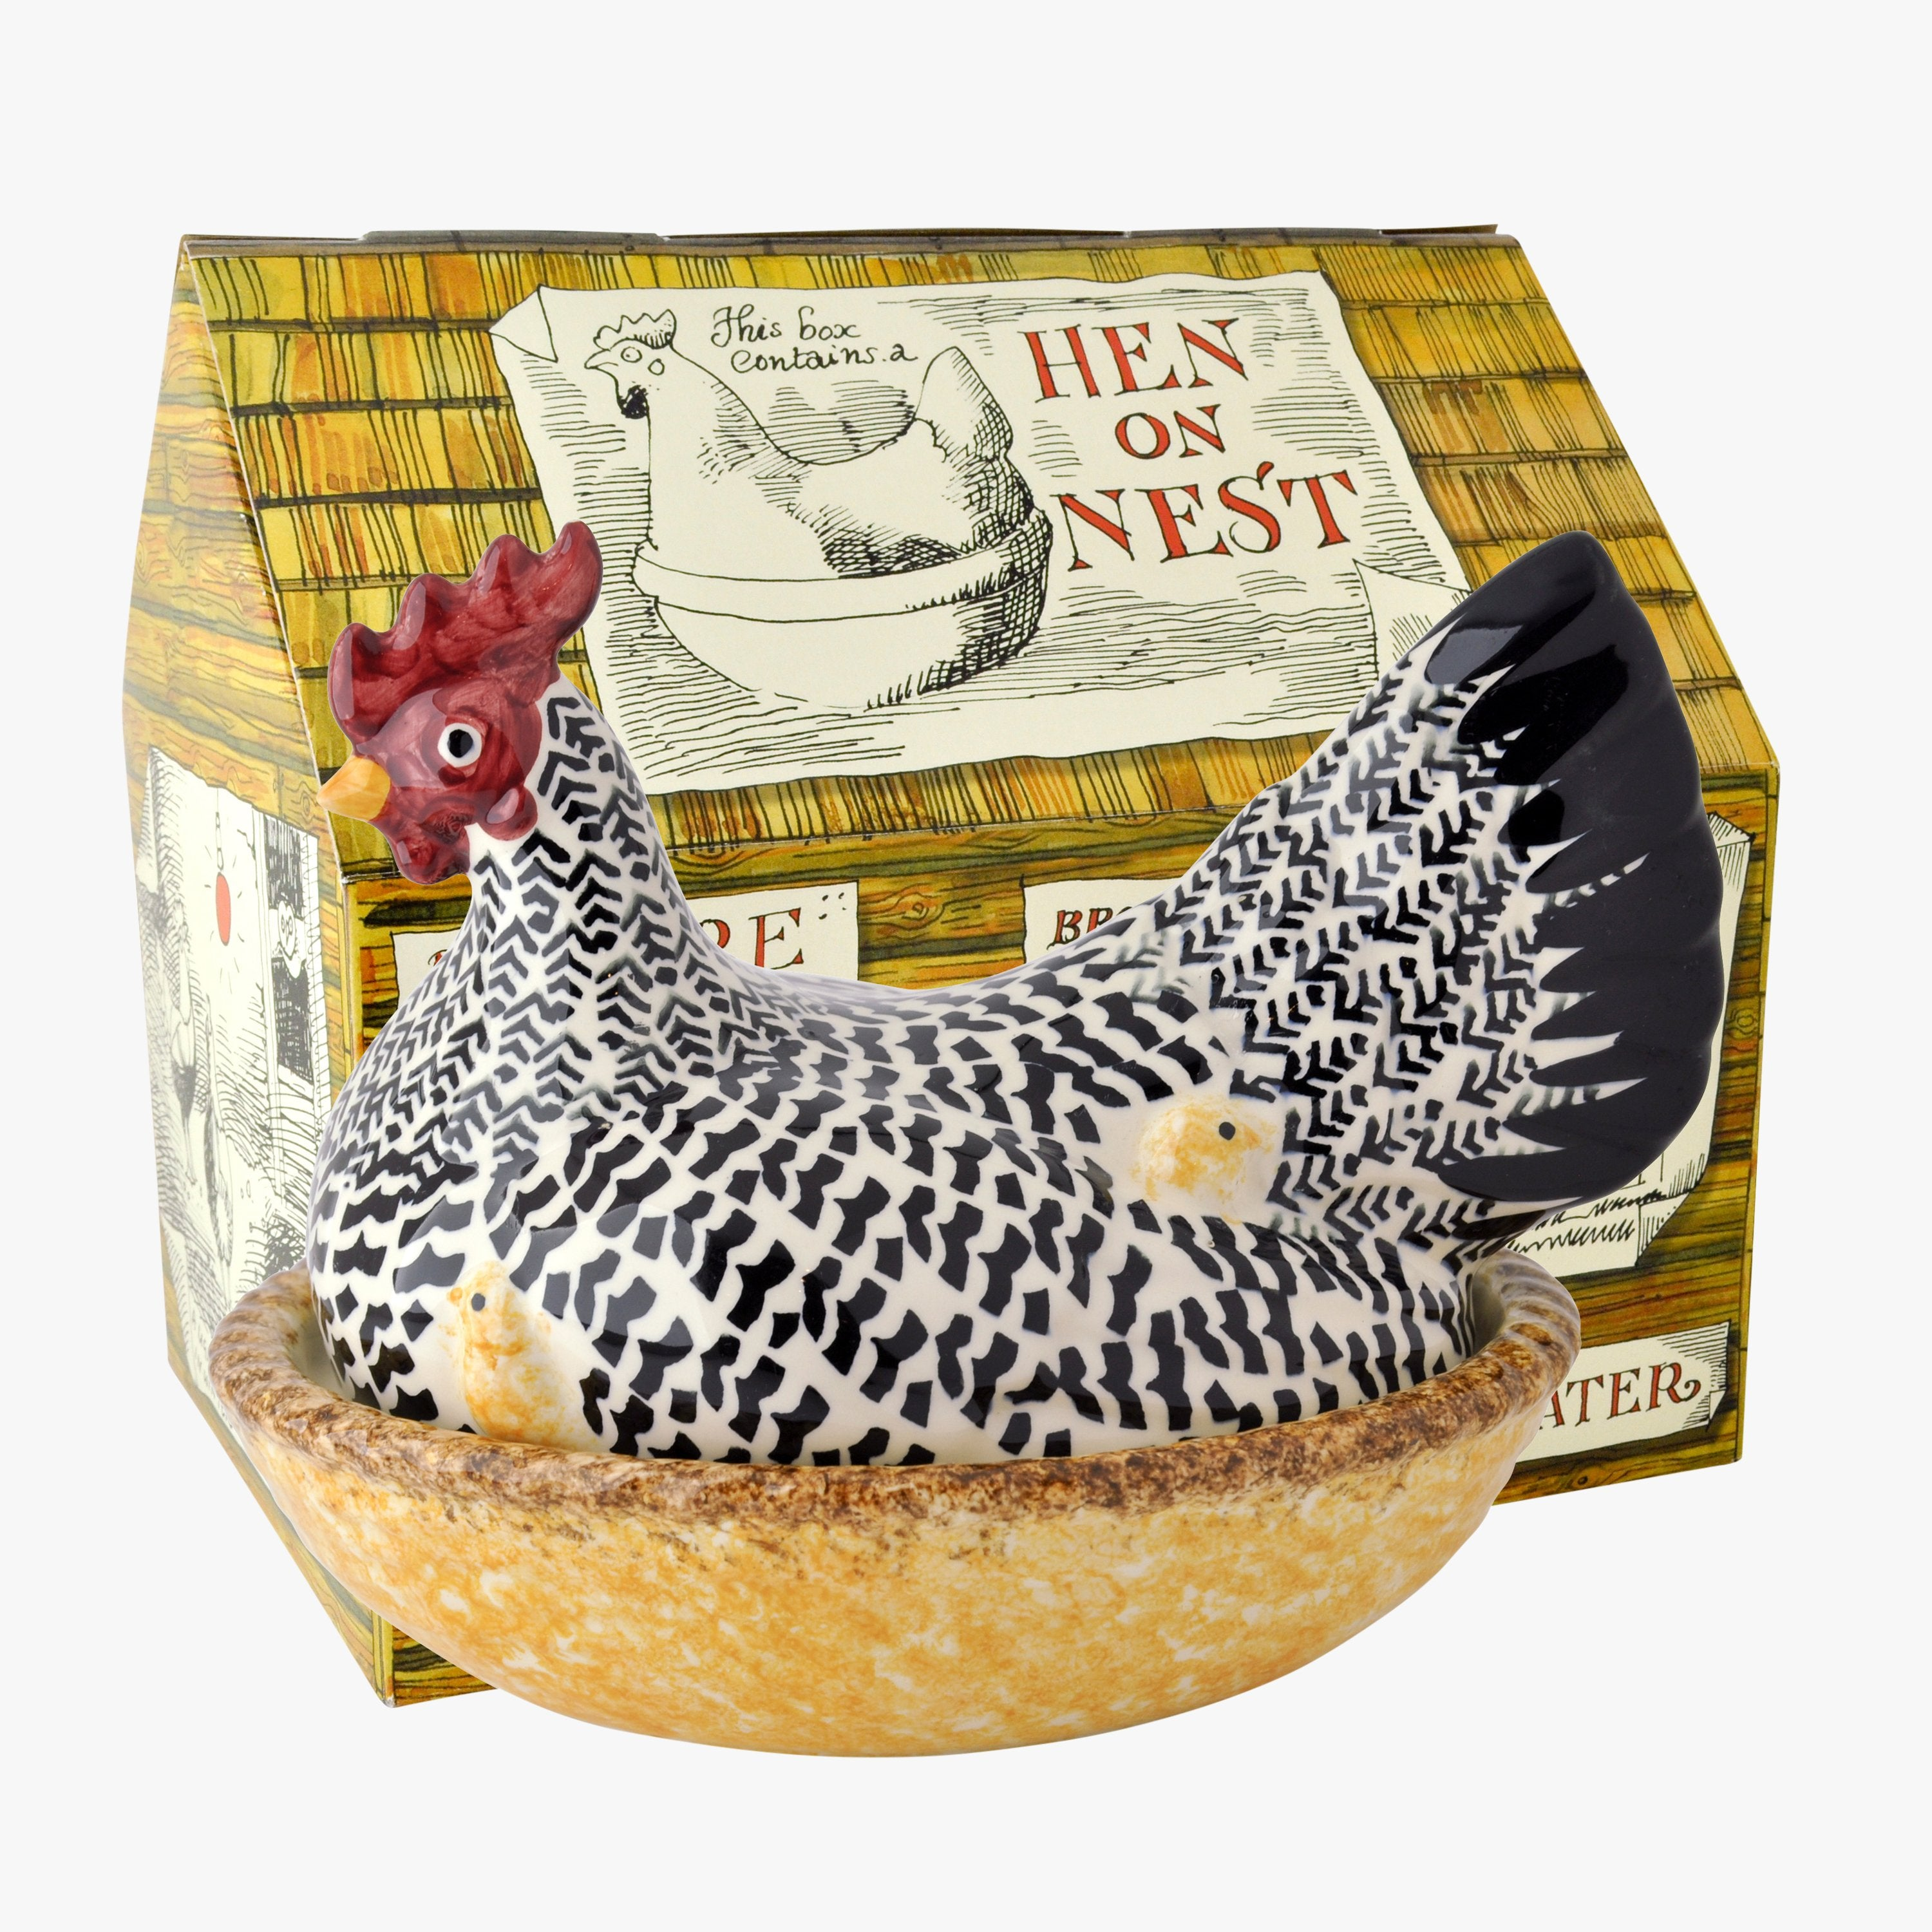 Photo of Silver hen on nest boxed